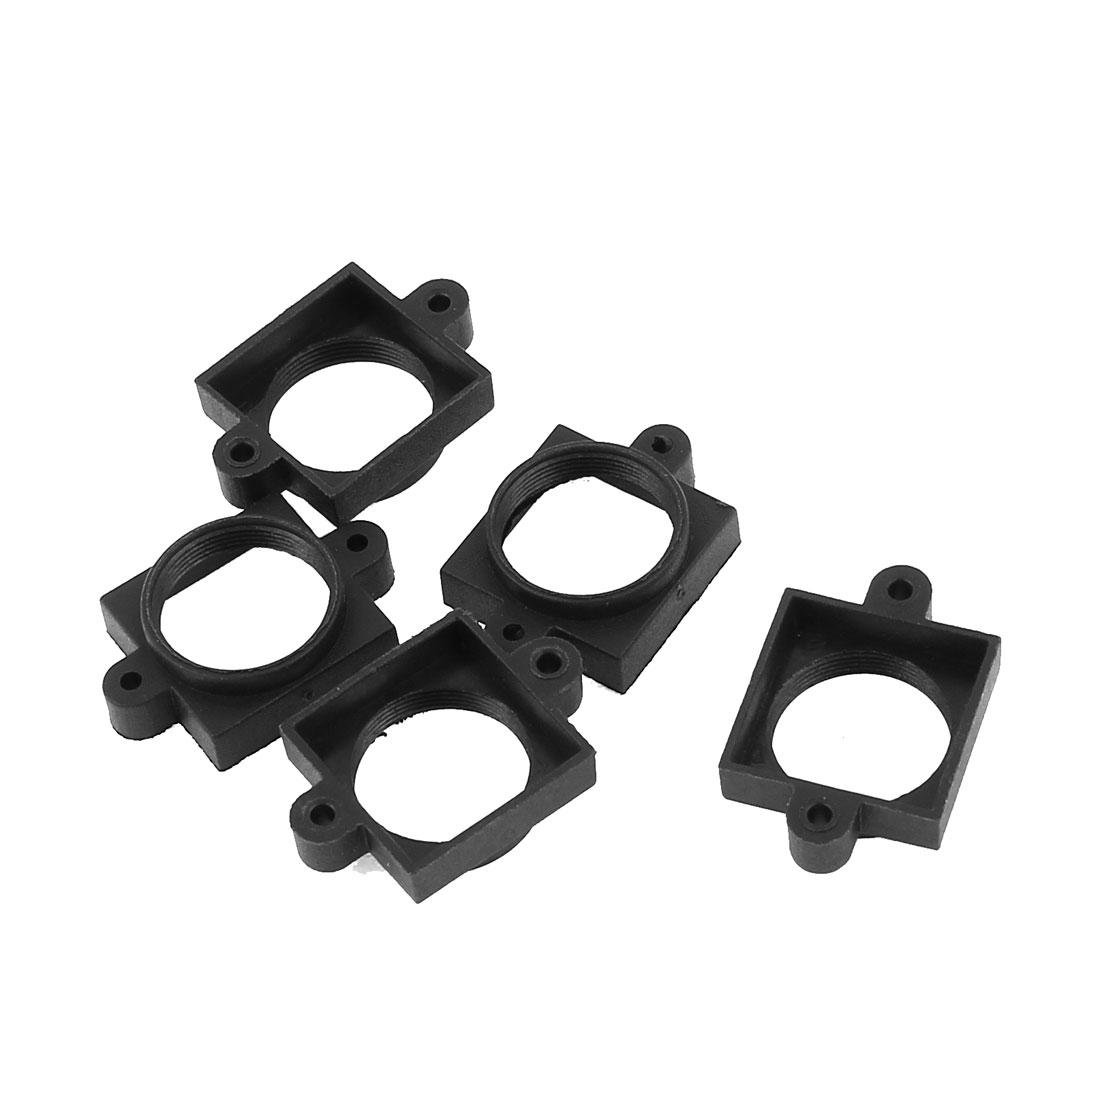 5 Pcs HD-28 M12 CCTV Camera CCD Lens Mount Holder 18mm Spacing